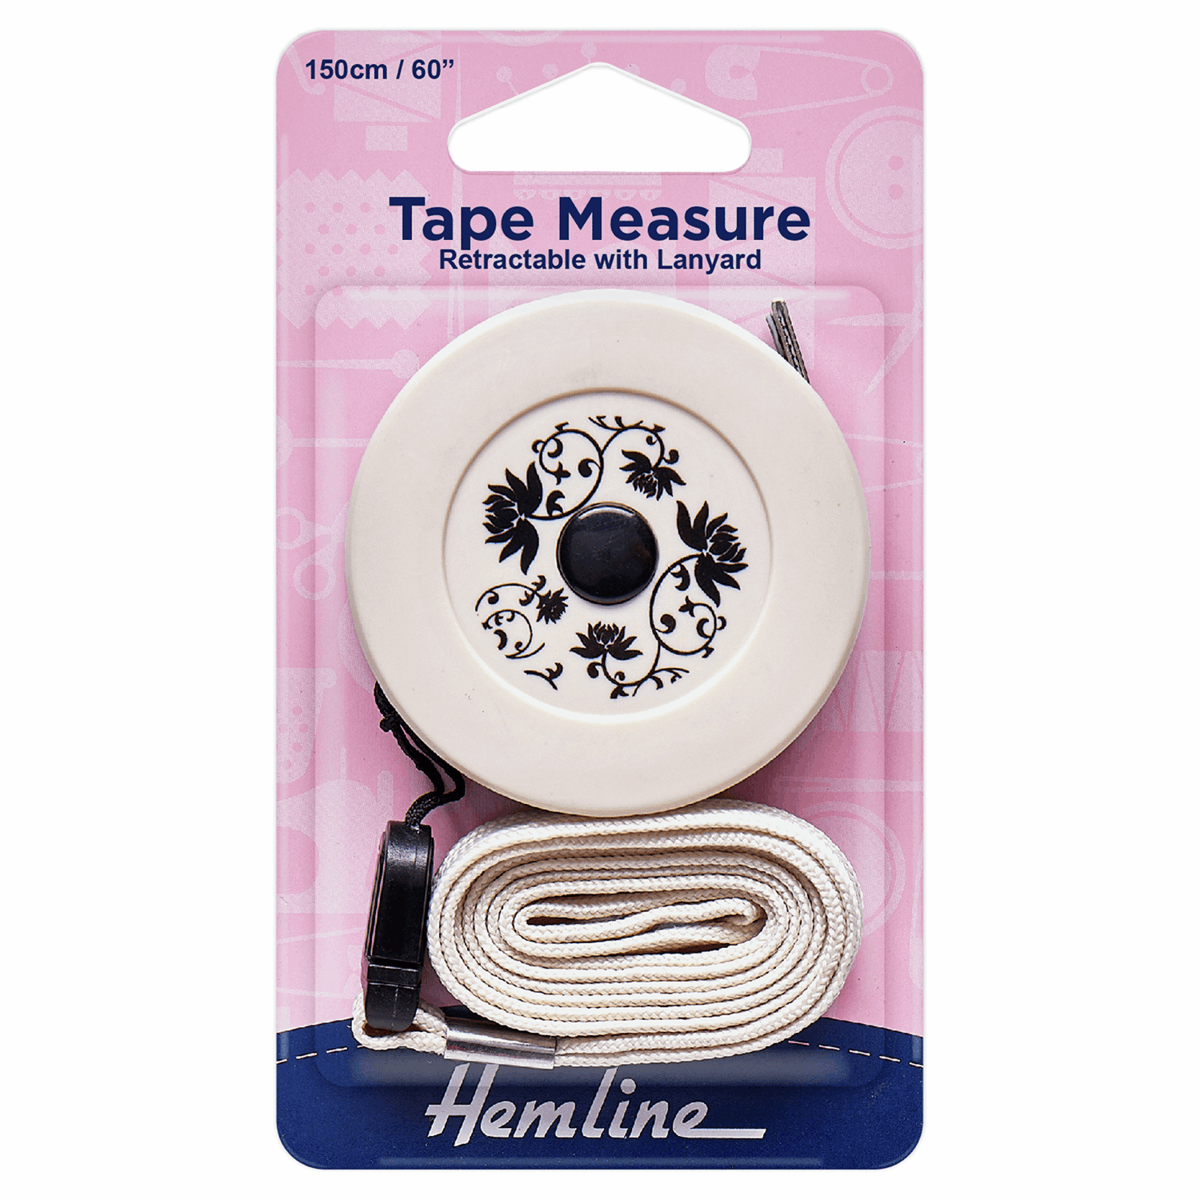 Picture of Tape Measure: Retractable with Lanyard - 150cm